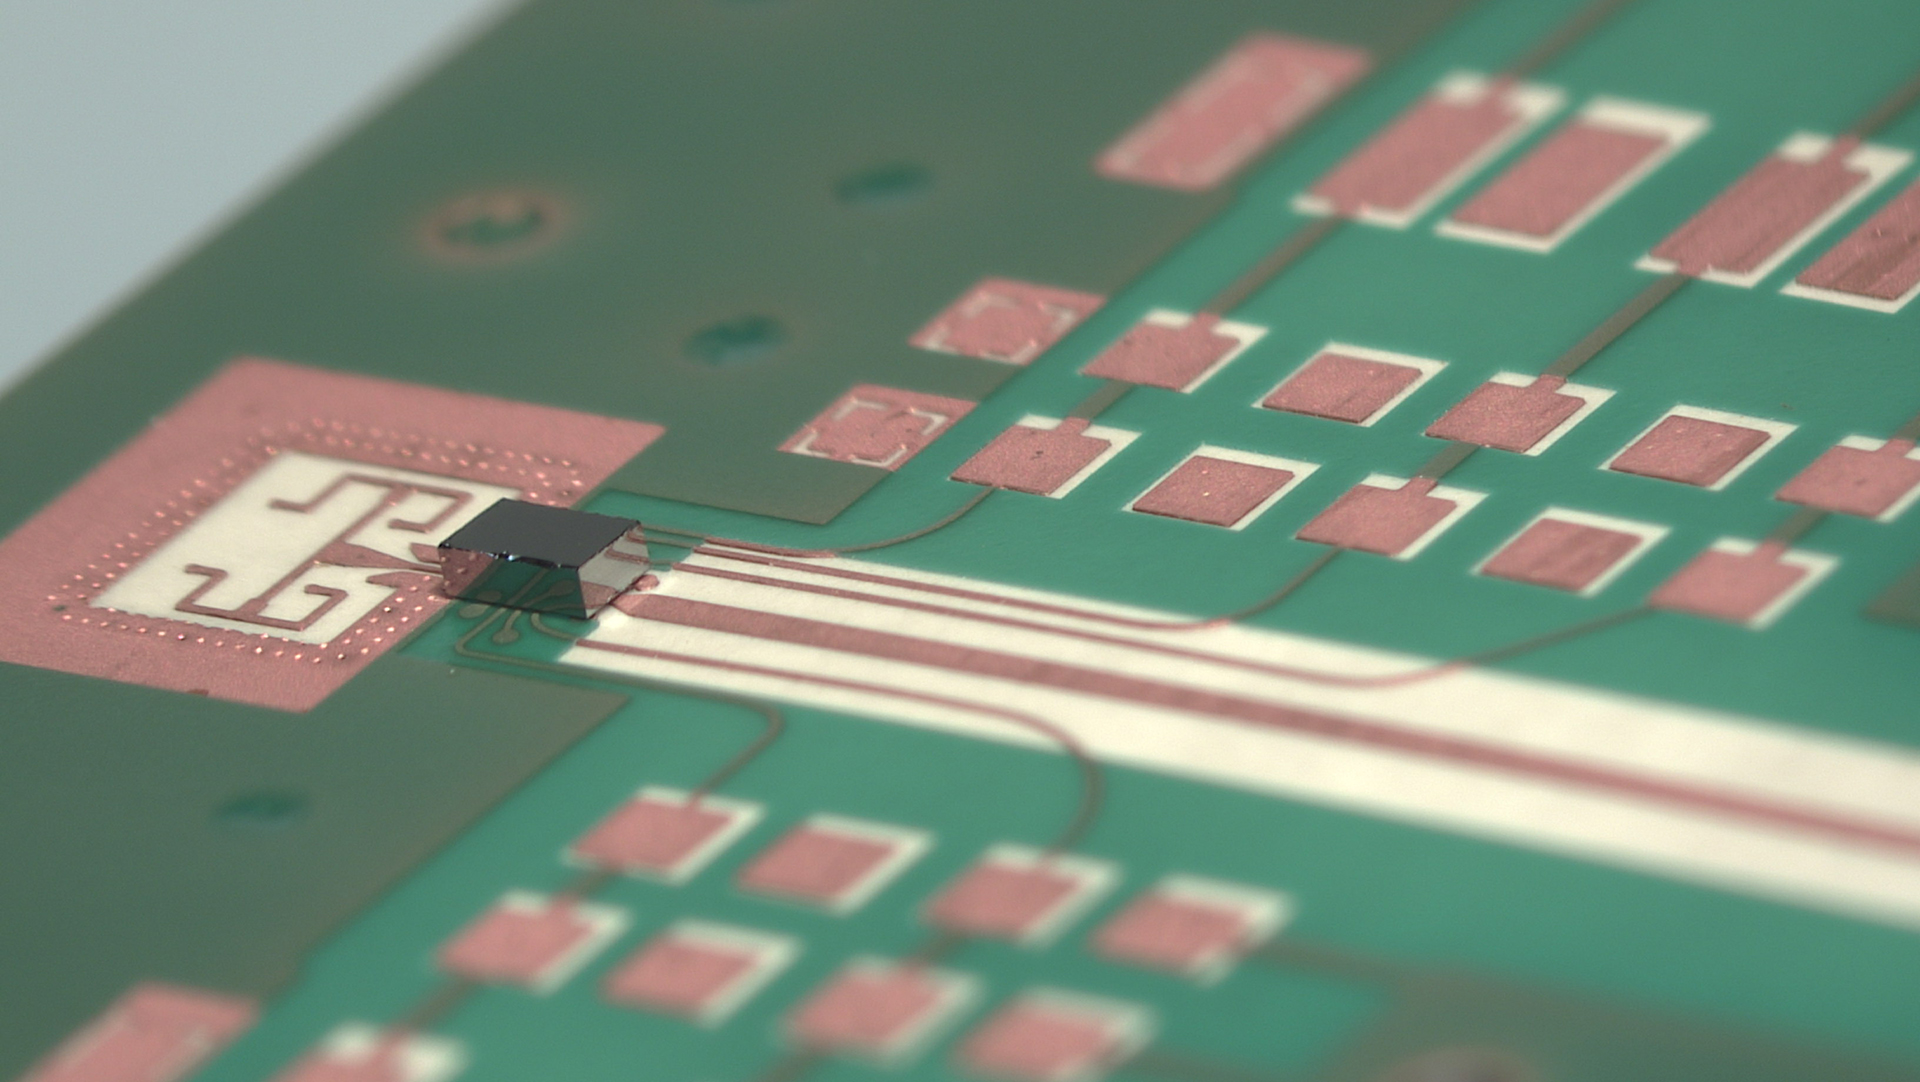 CEA-Leti Explores Technology Roadmap For Sixth-Generation Wireless Networks in mmWave Bands